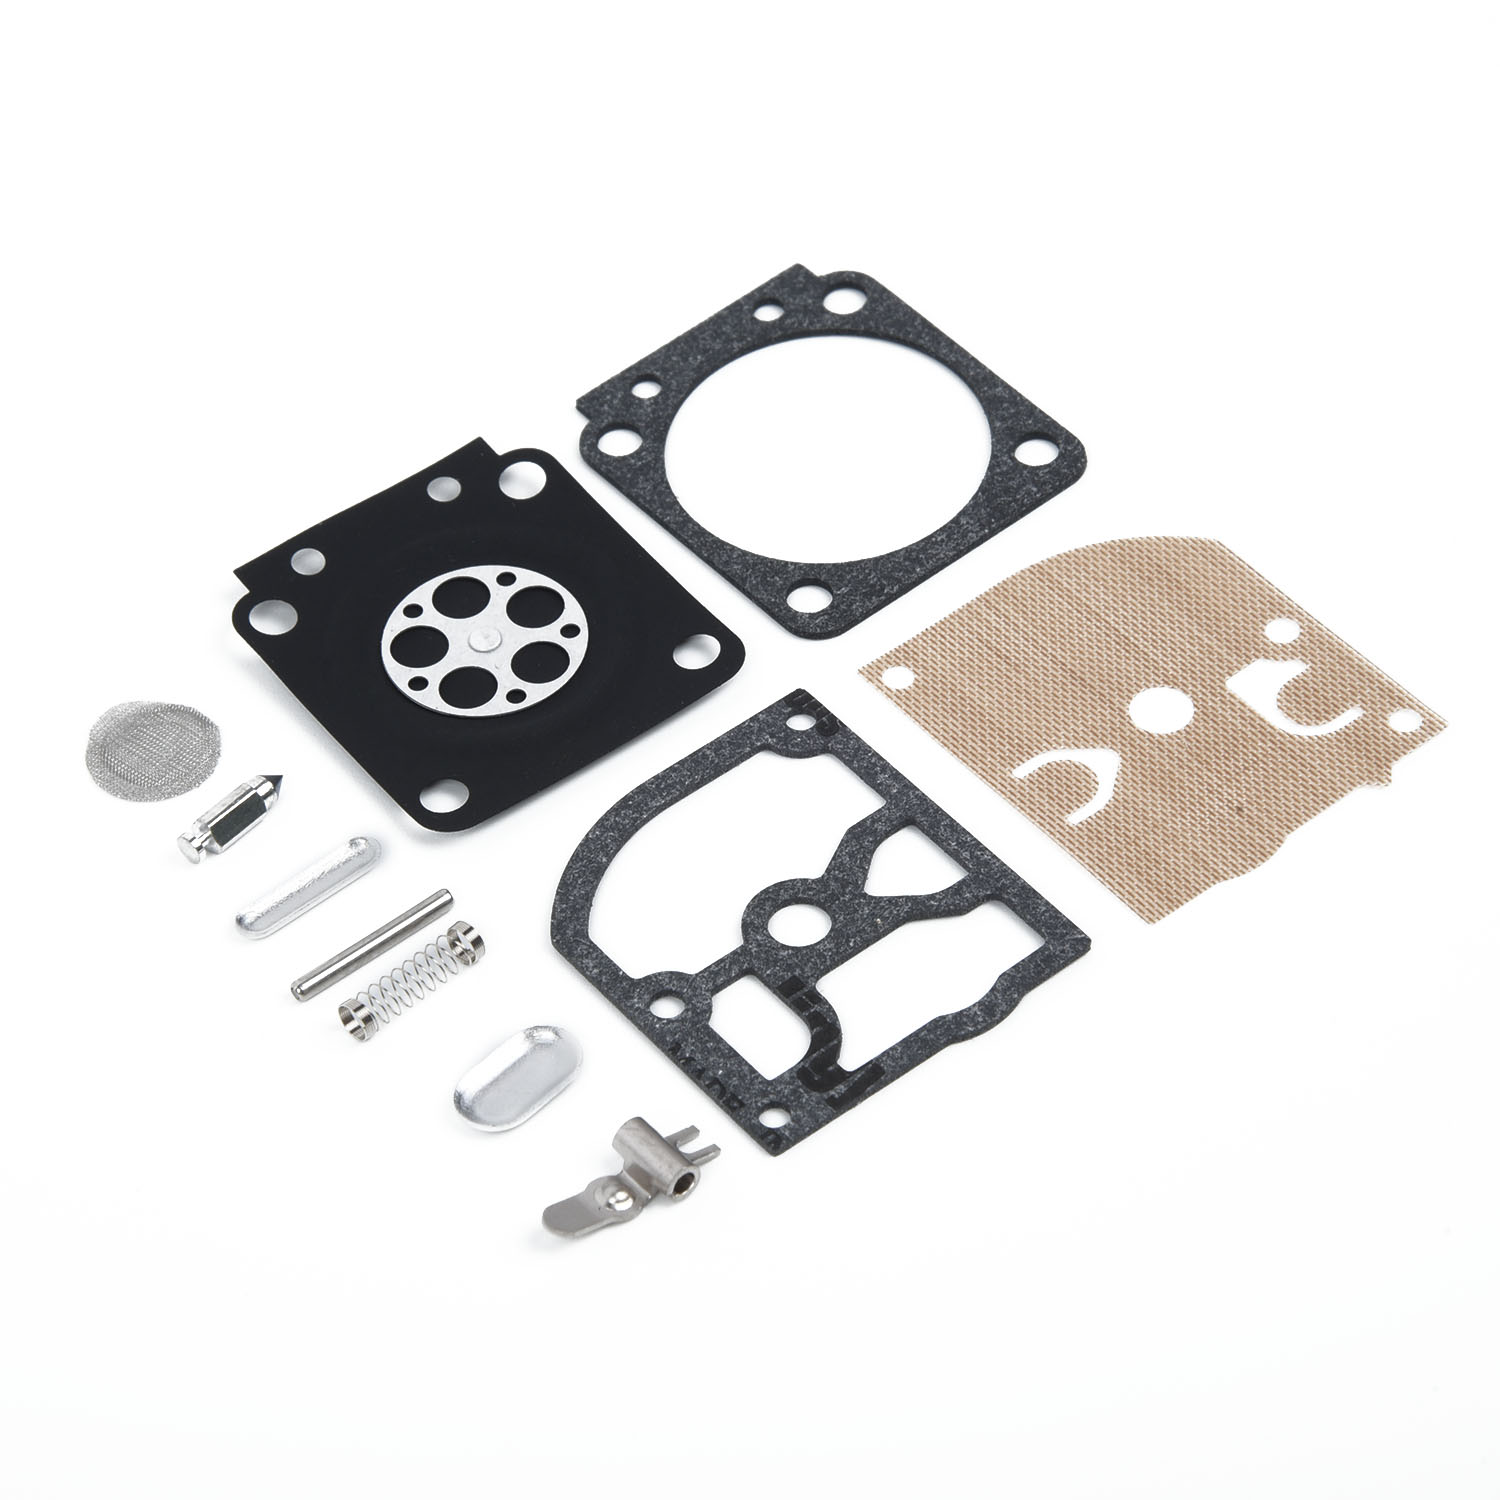 Carburetor Carb Repair Kit <font><b>Parts</b></font> For ZAMA RB-100 <font><b>STIHL</b></font> HS45 FS55 <font><b>FS38</b></font> BG45&MM55 image